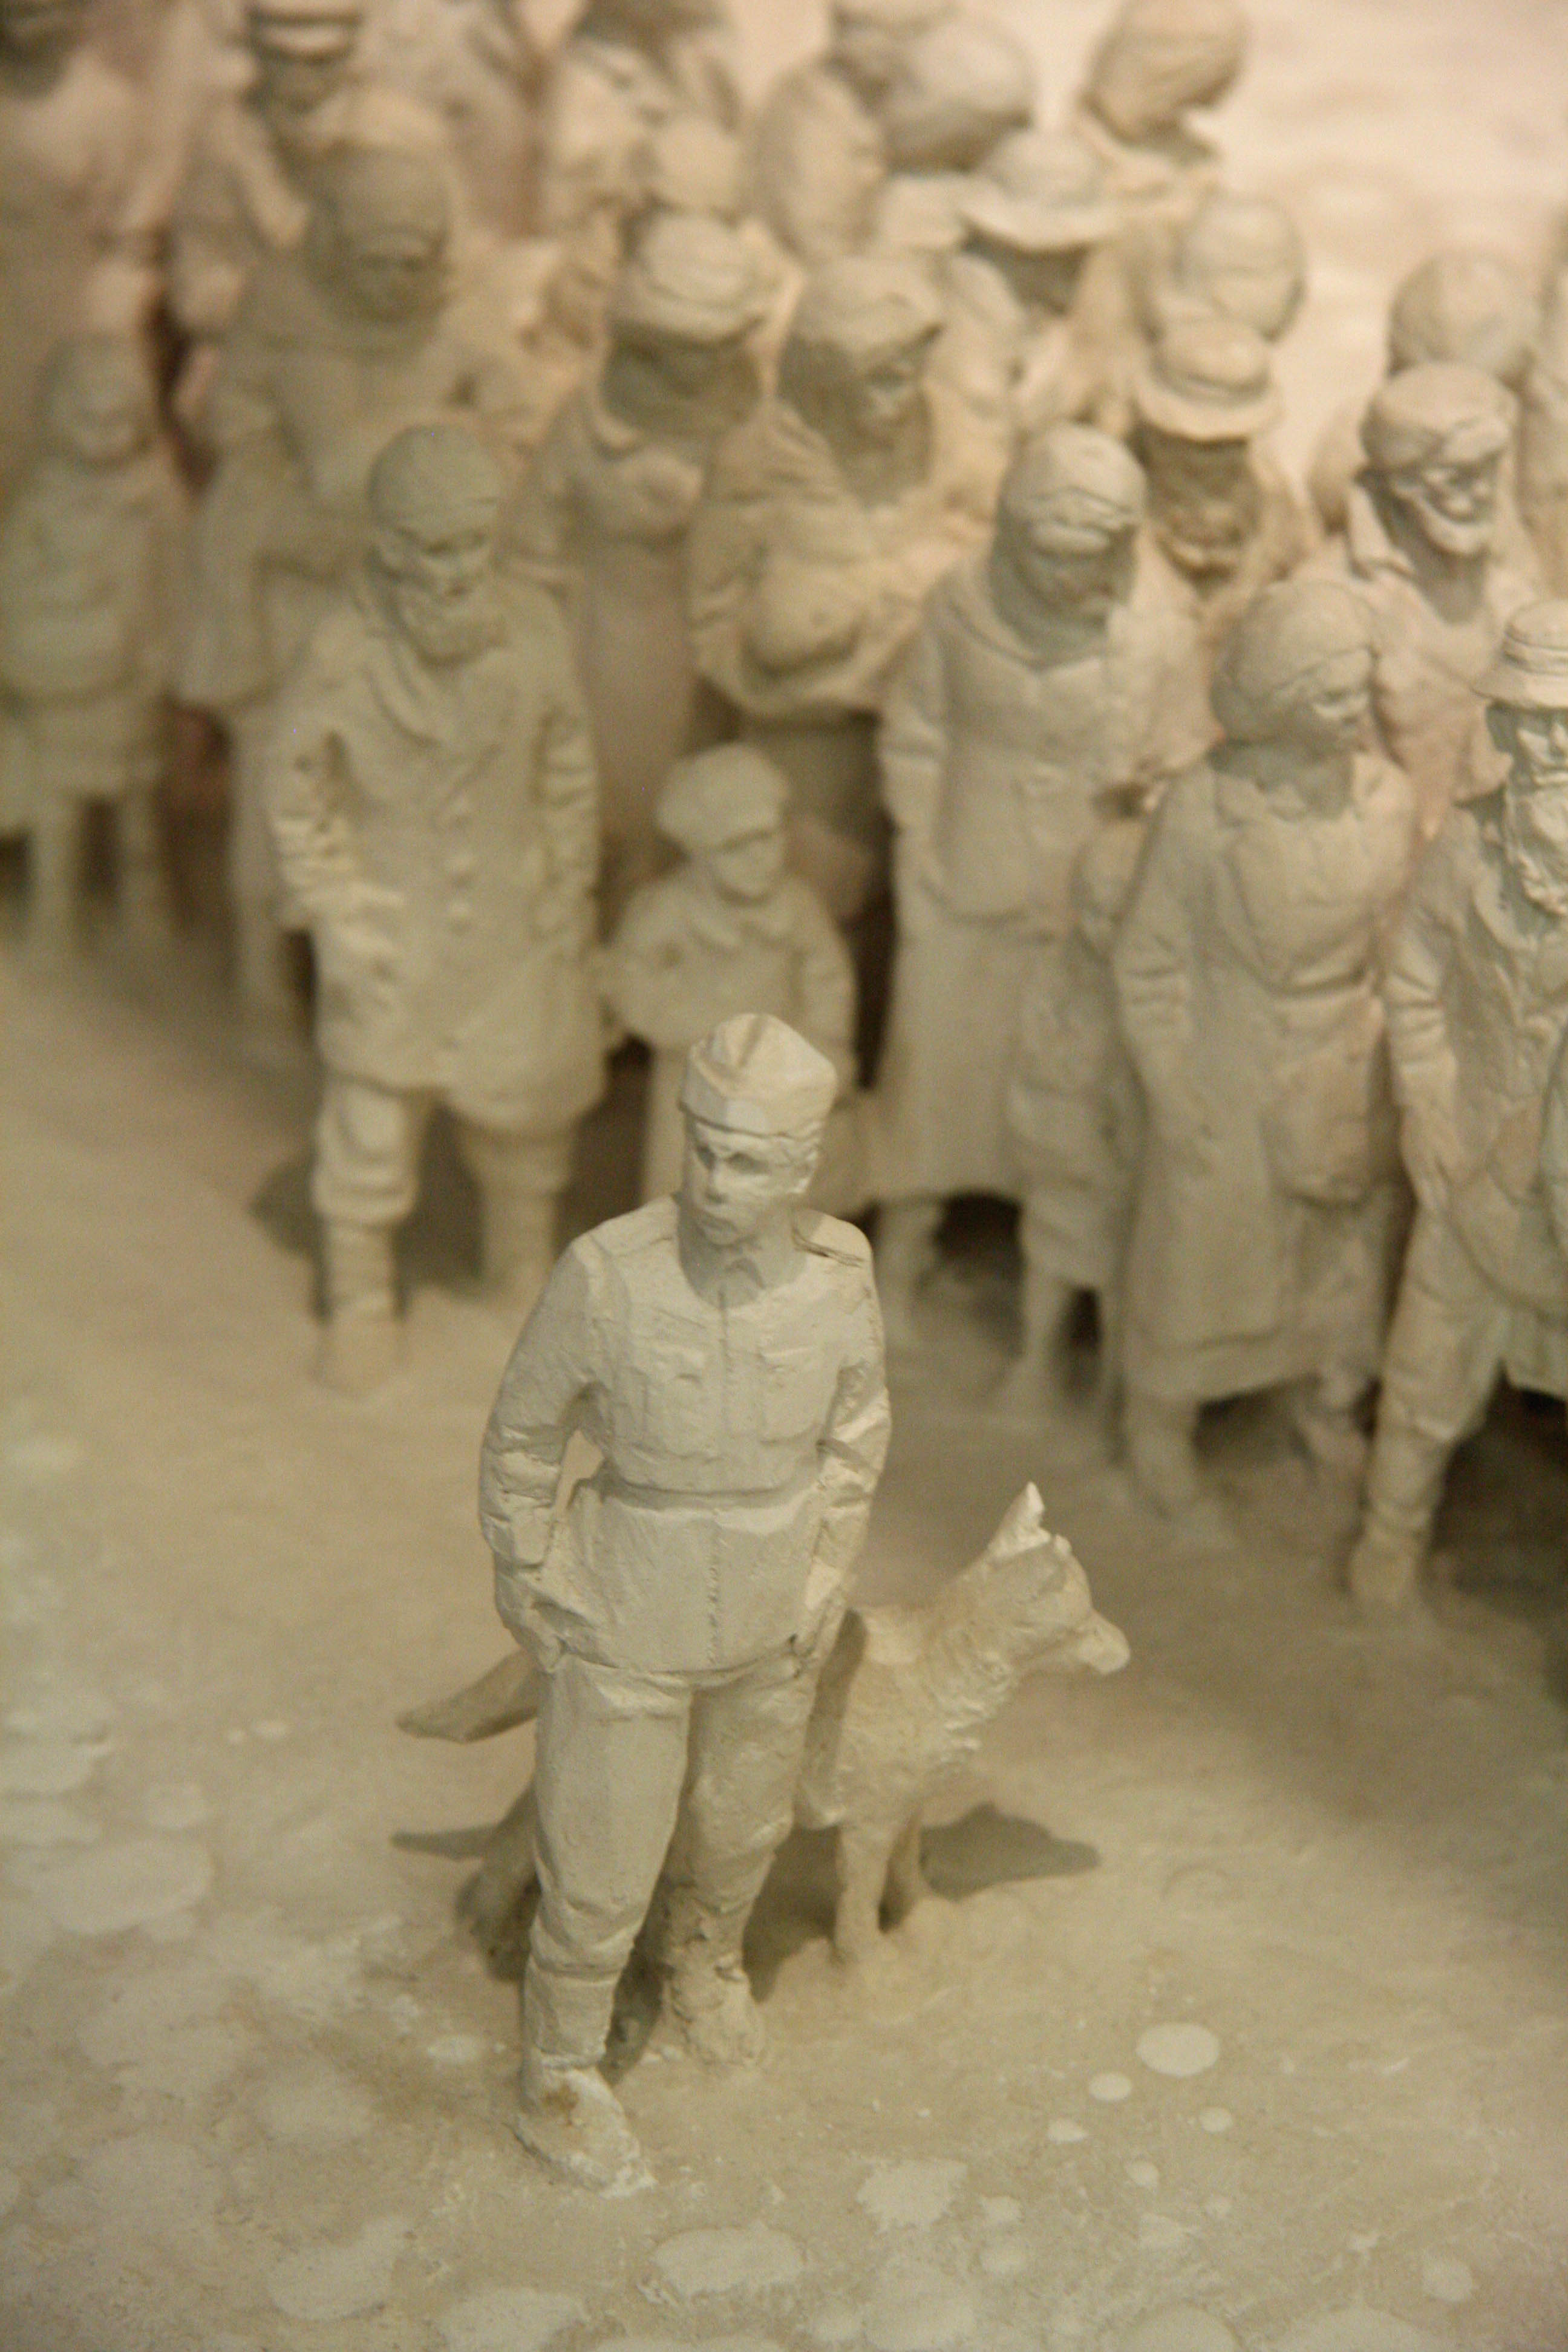 A guard with a dog and prisoners in a model of Auschwitz by Polish sculptor Mieczyslaw Stobierski at the Deutsches Historisches Museum (German Historical Museum) in Berlin